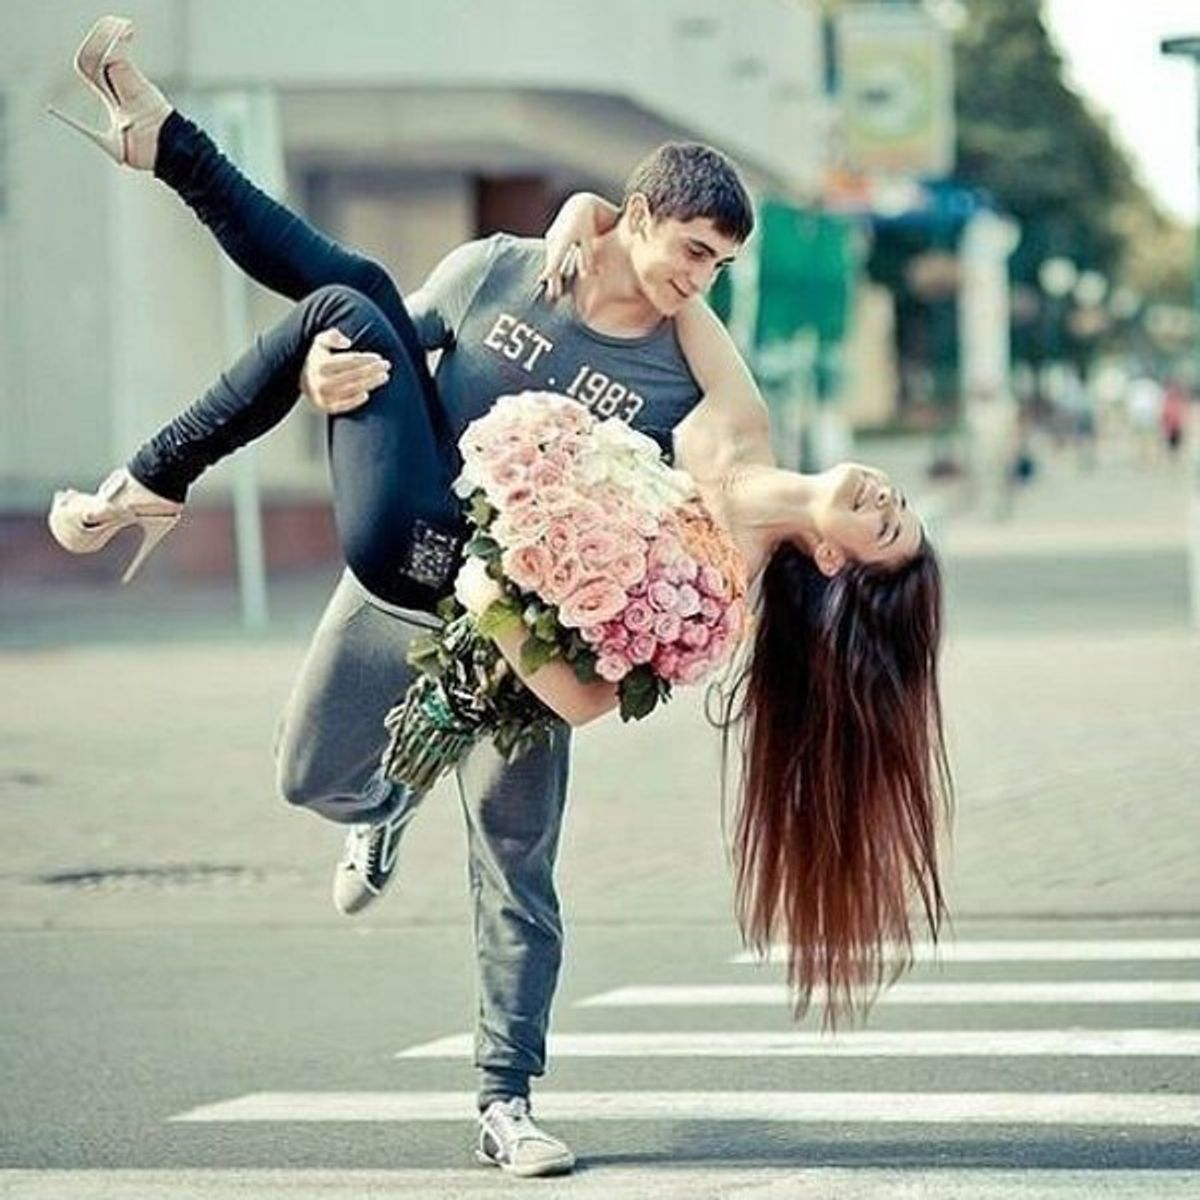 Is Love Or Respect More Important In A Relationship